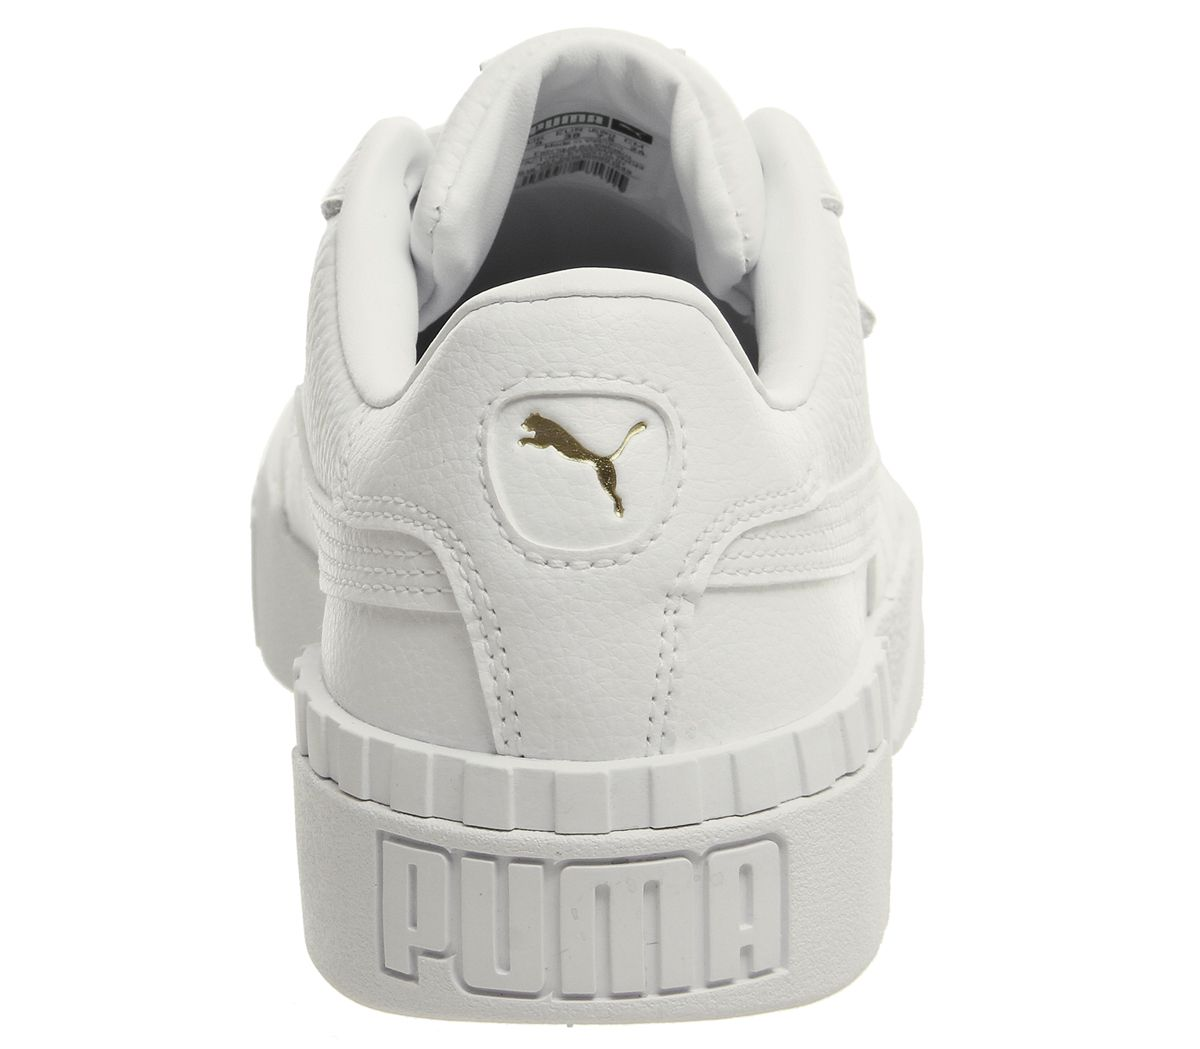 4620dbd15 Sentinel Womens Puma Cali Trainers Puma White Puma White Trainers Shoes